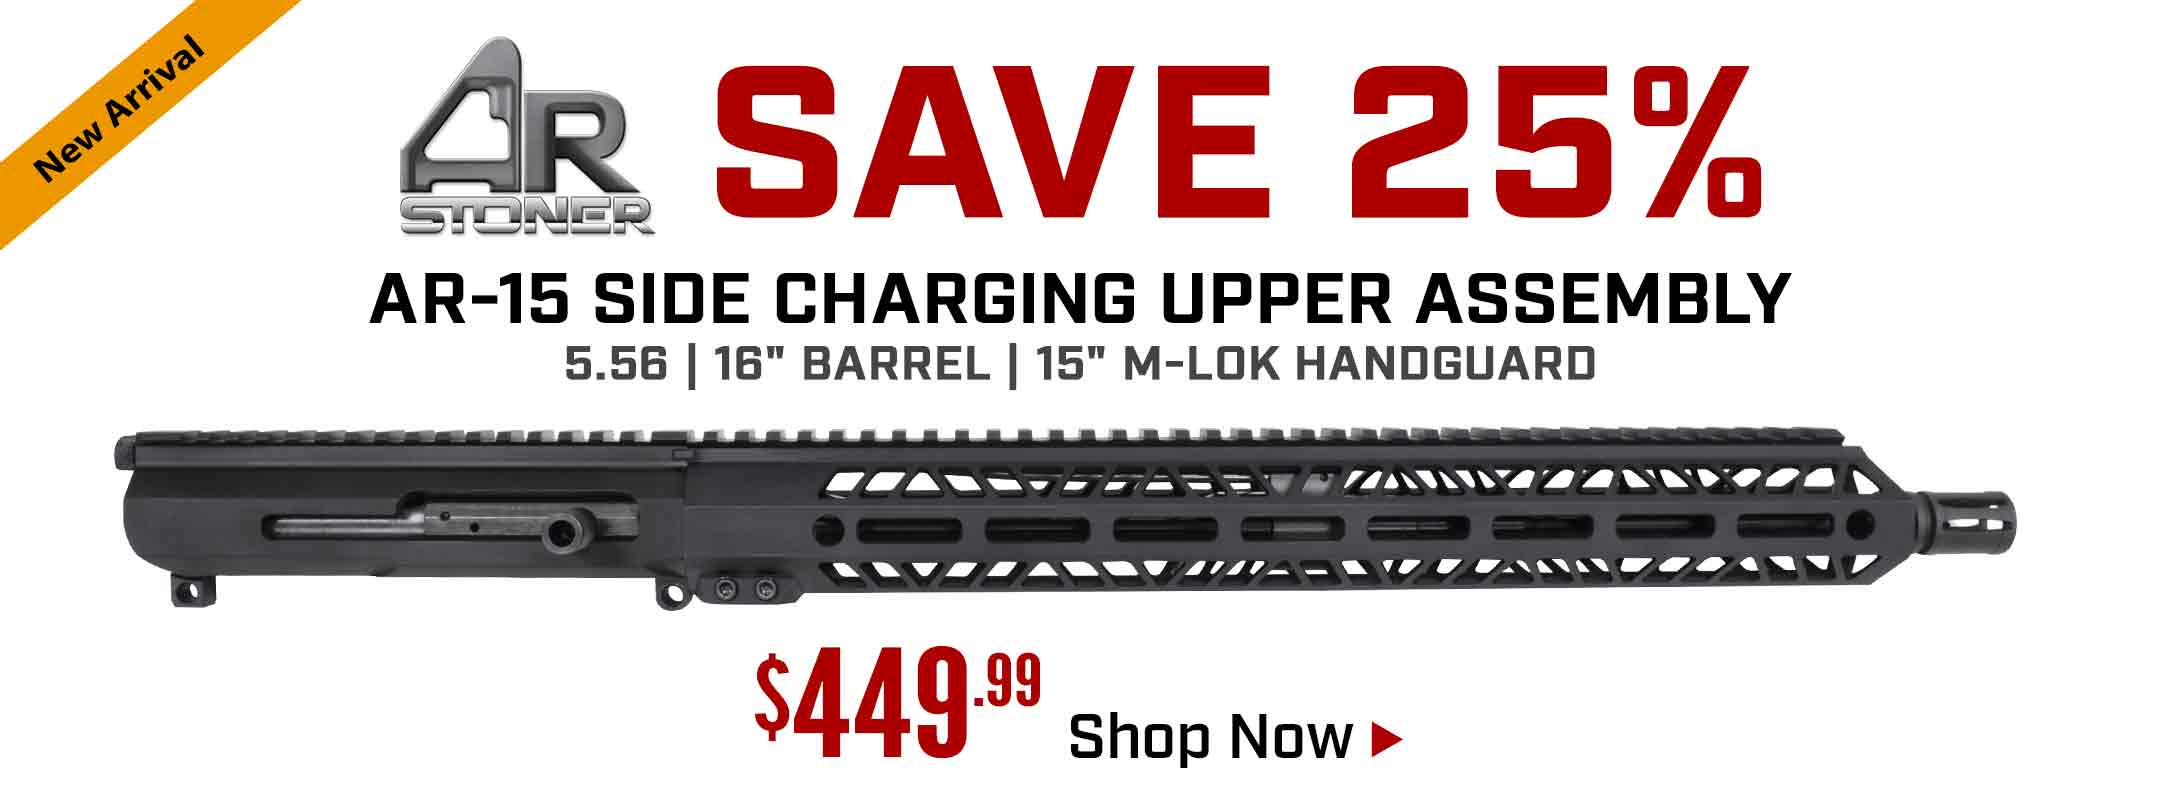 Save $150 on AR-Stoner Side Charging Upper Receiver Assembly with M-Lok Handguard